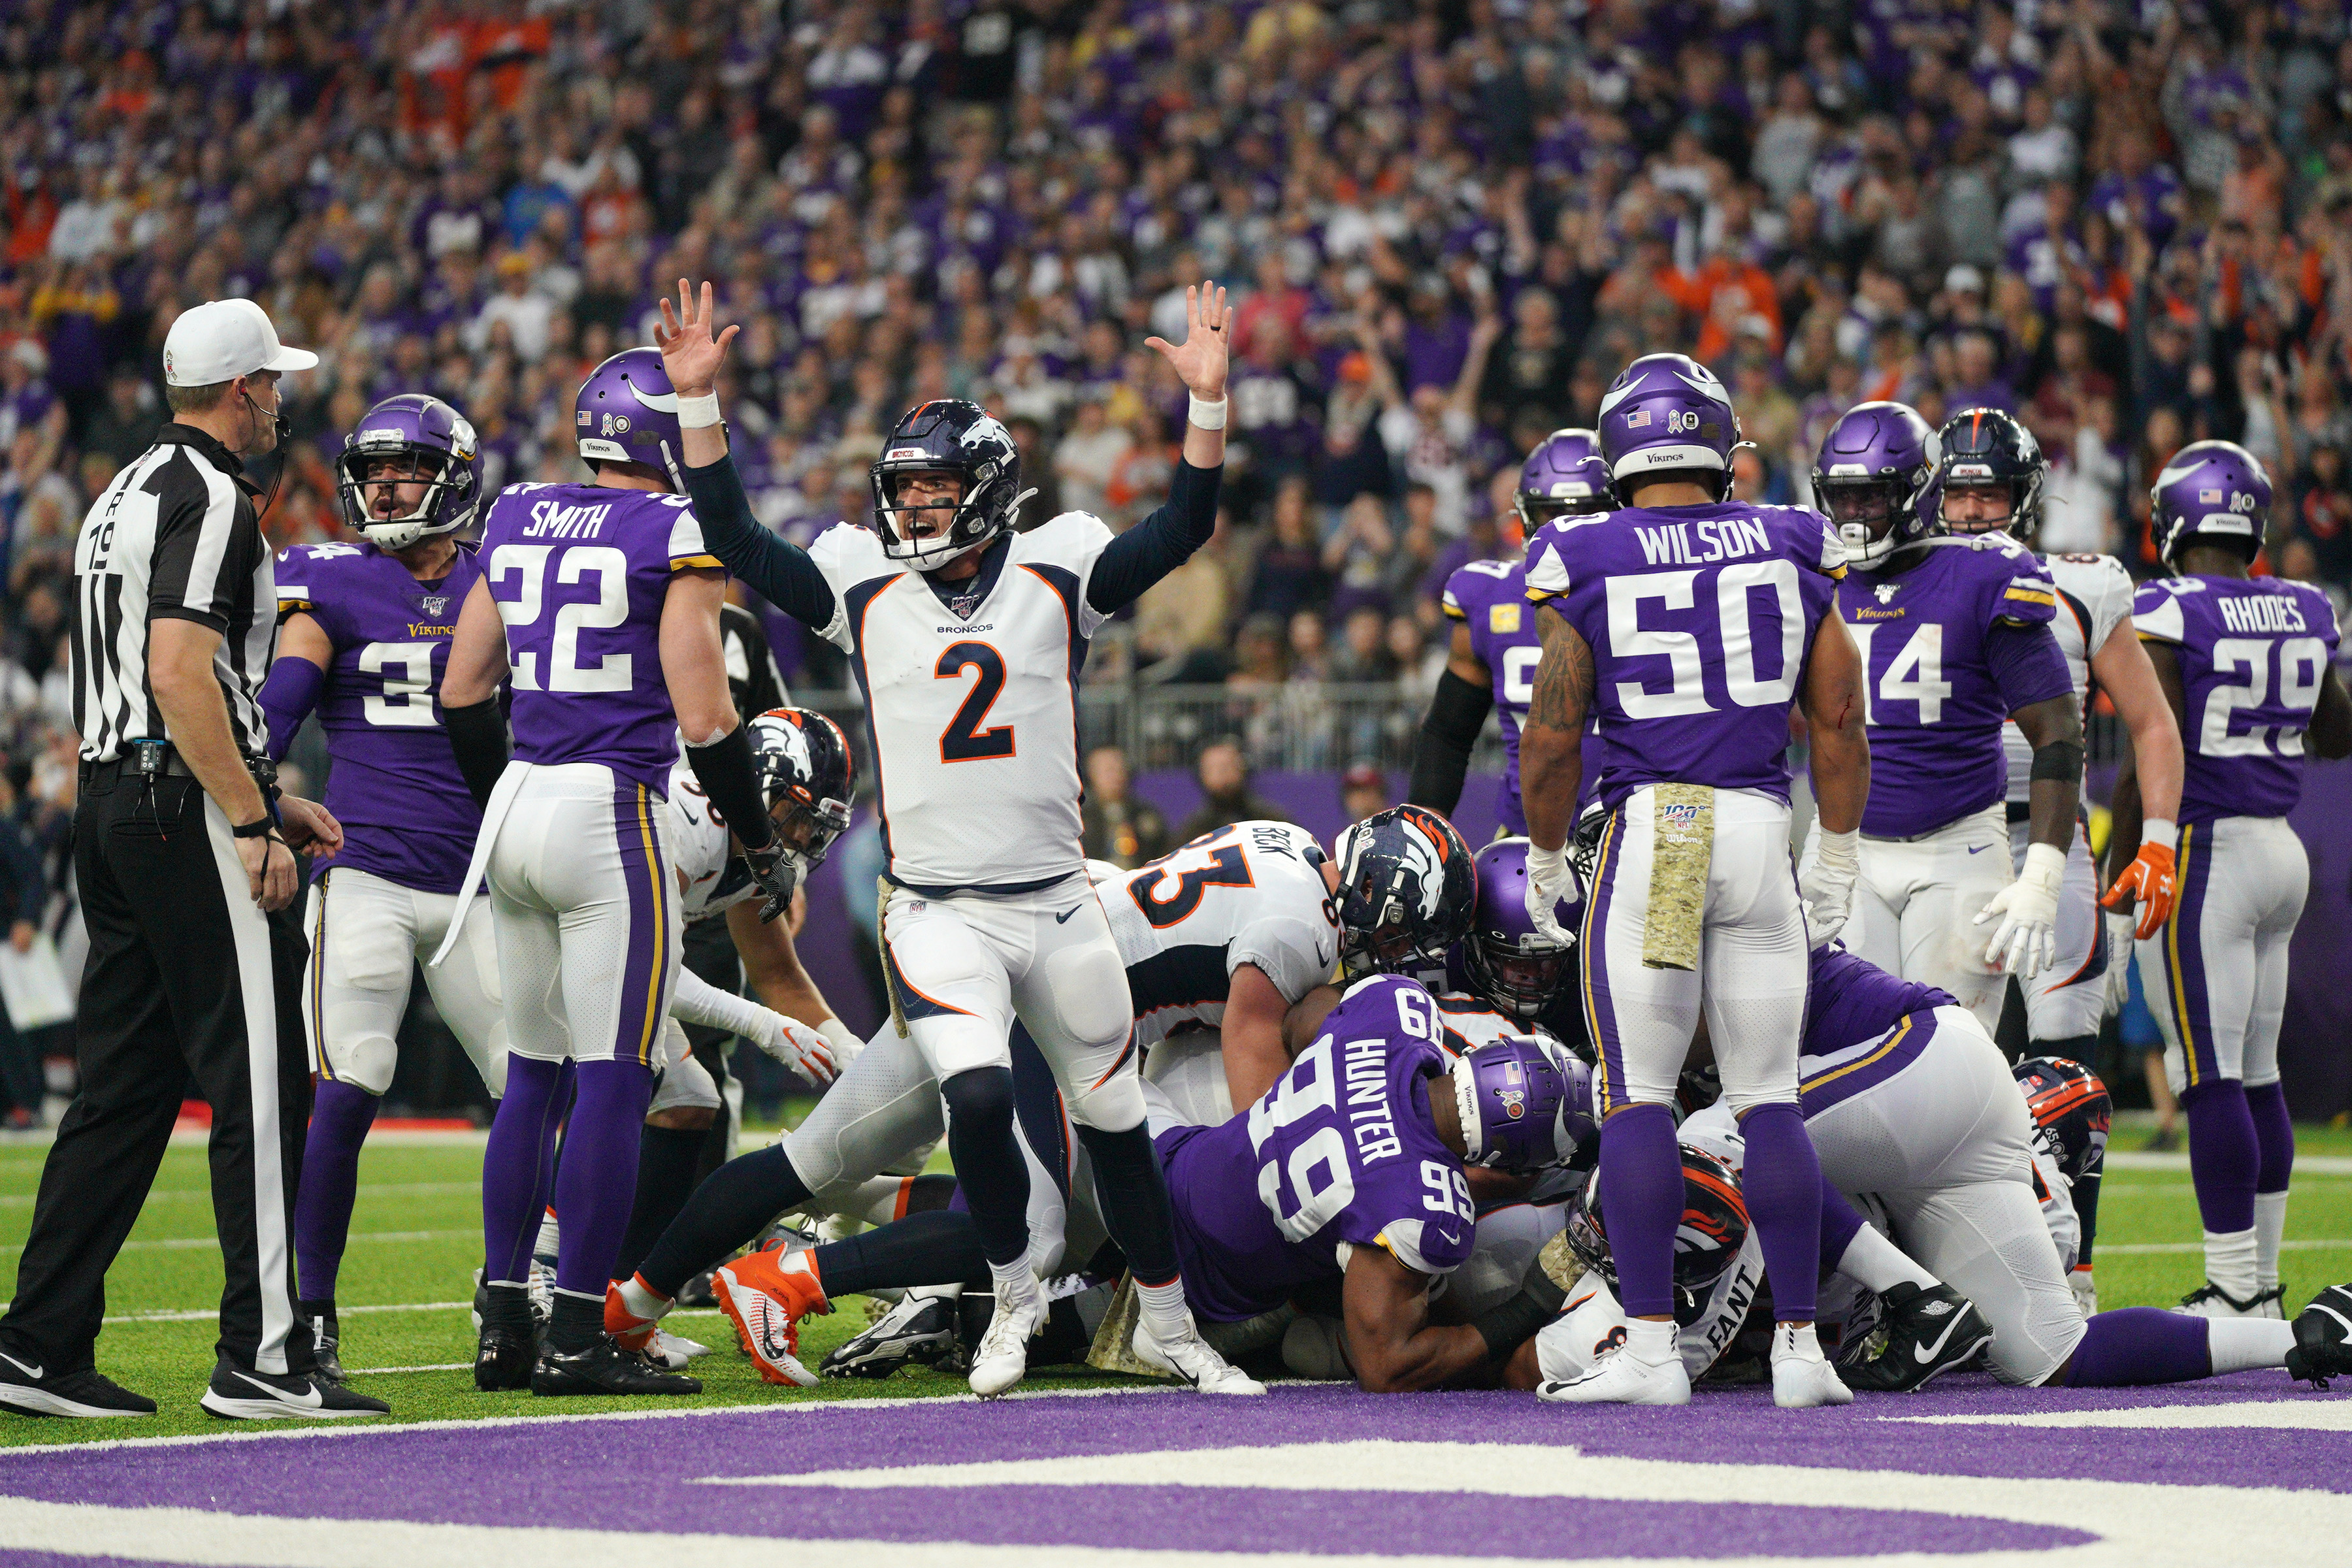 The Denver Broncos played at the Minnesota Vikings